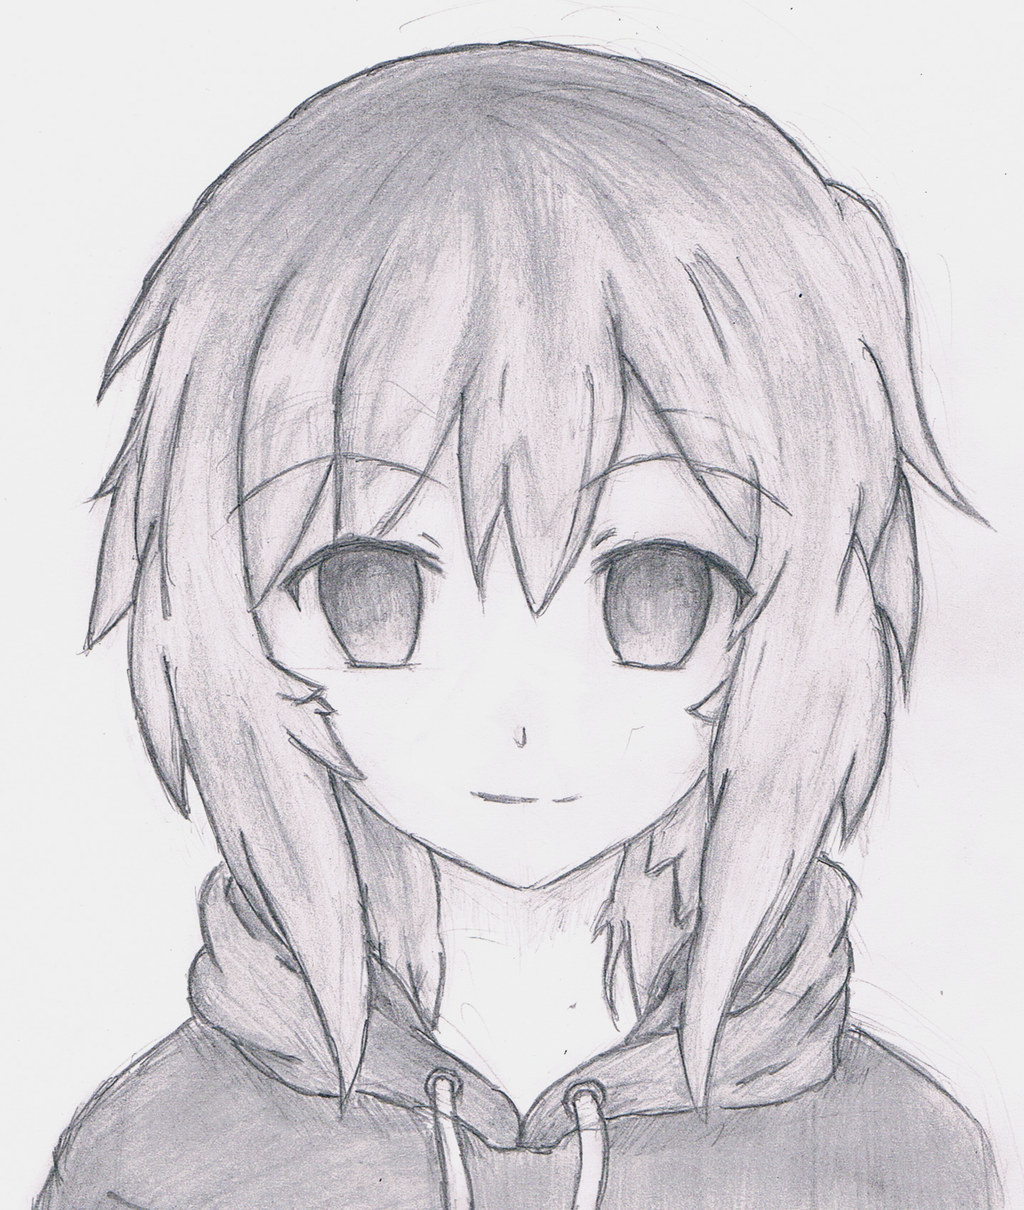 Scribble Drawing Style : Differnt drawing styles manga myself anime style by regexx traditional